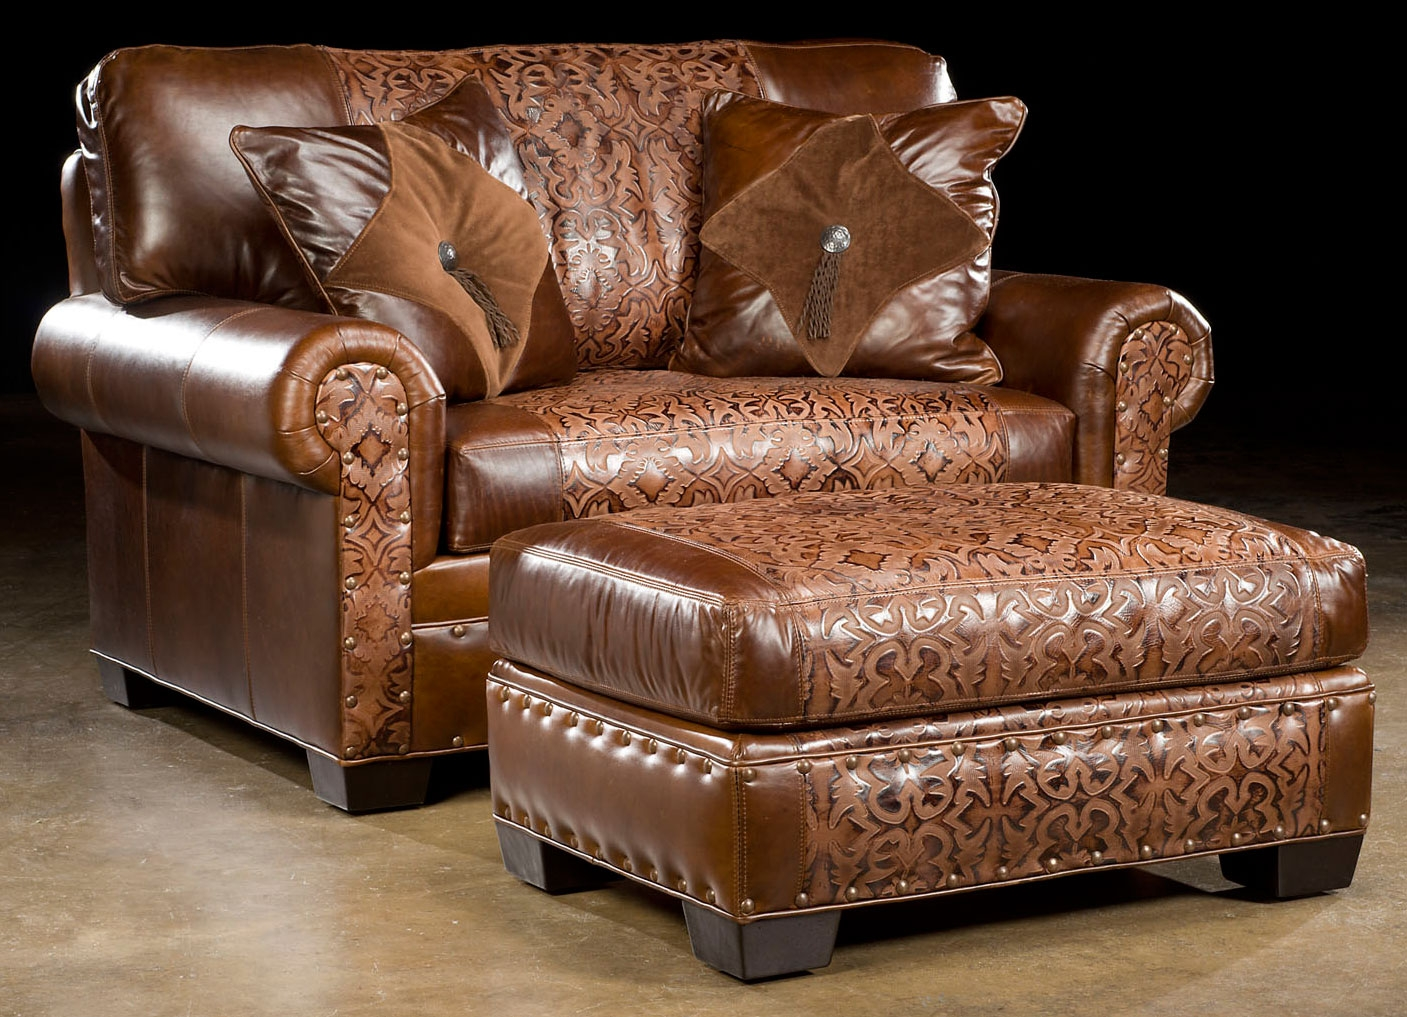 Perfect Luxury Leather U0026 Upholstered Furniture American Made Small Leather Sofa 40